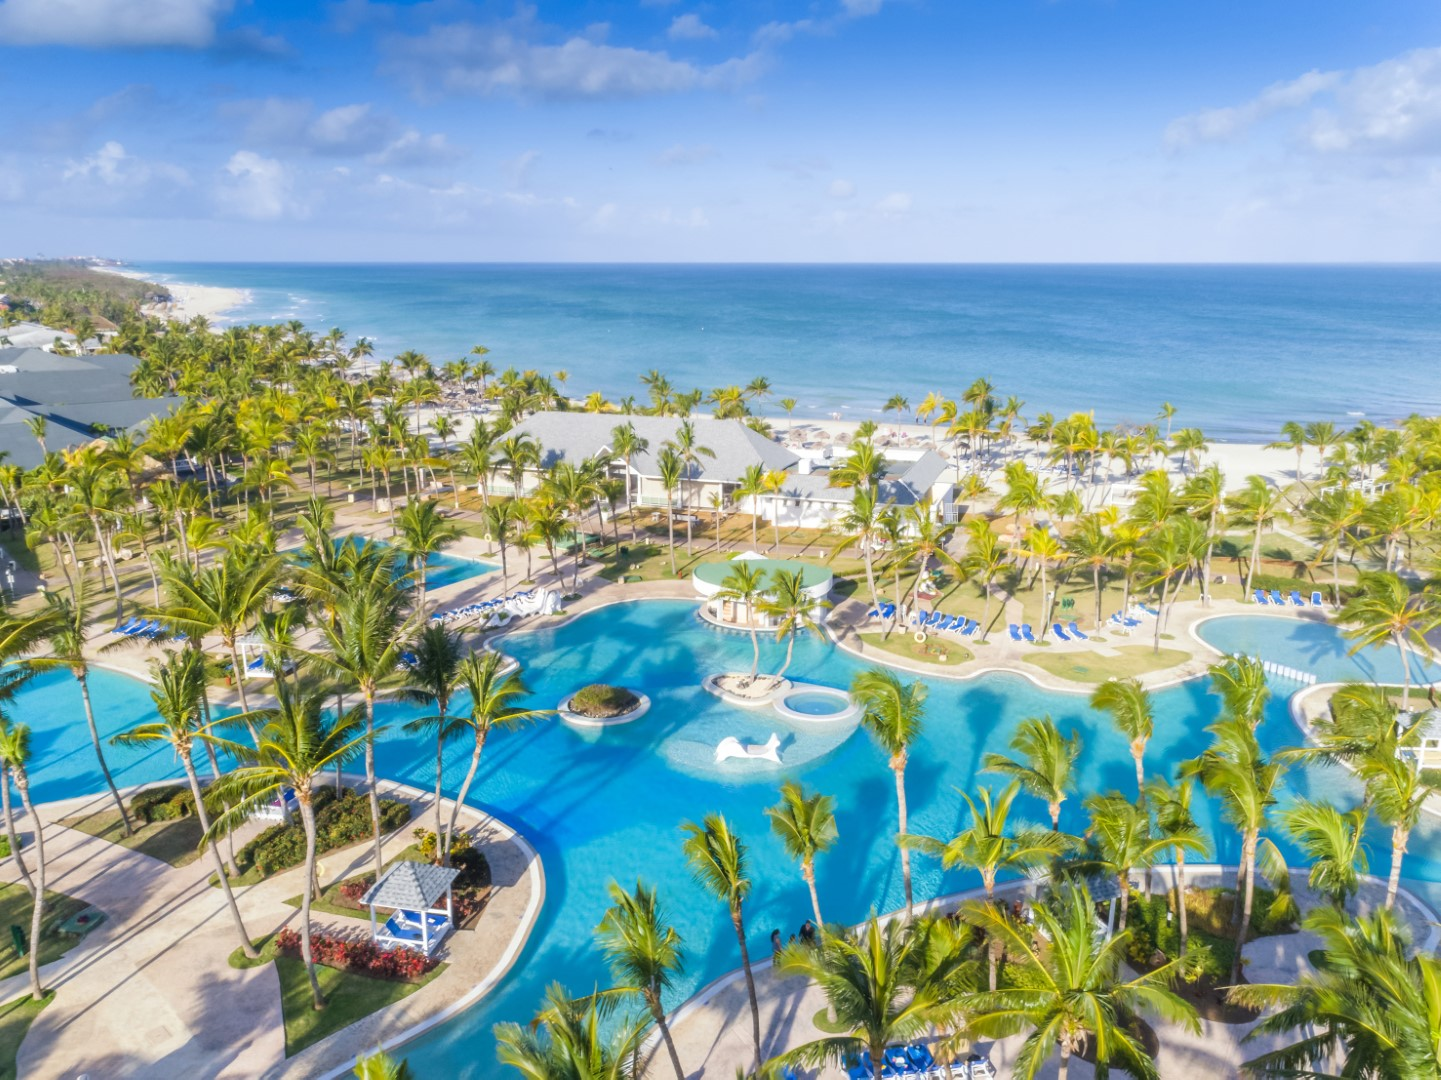 Aerial view of pool and beach at Paradisus Varadero